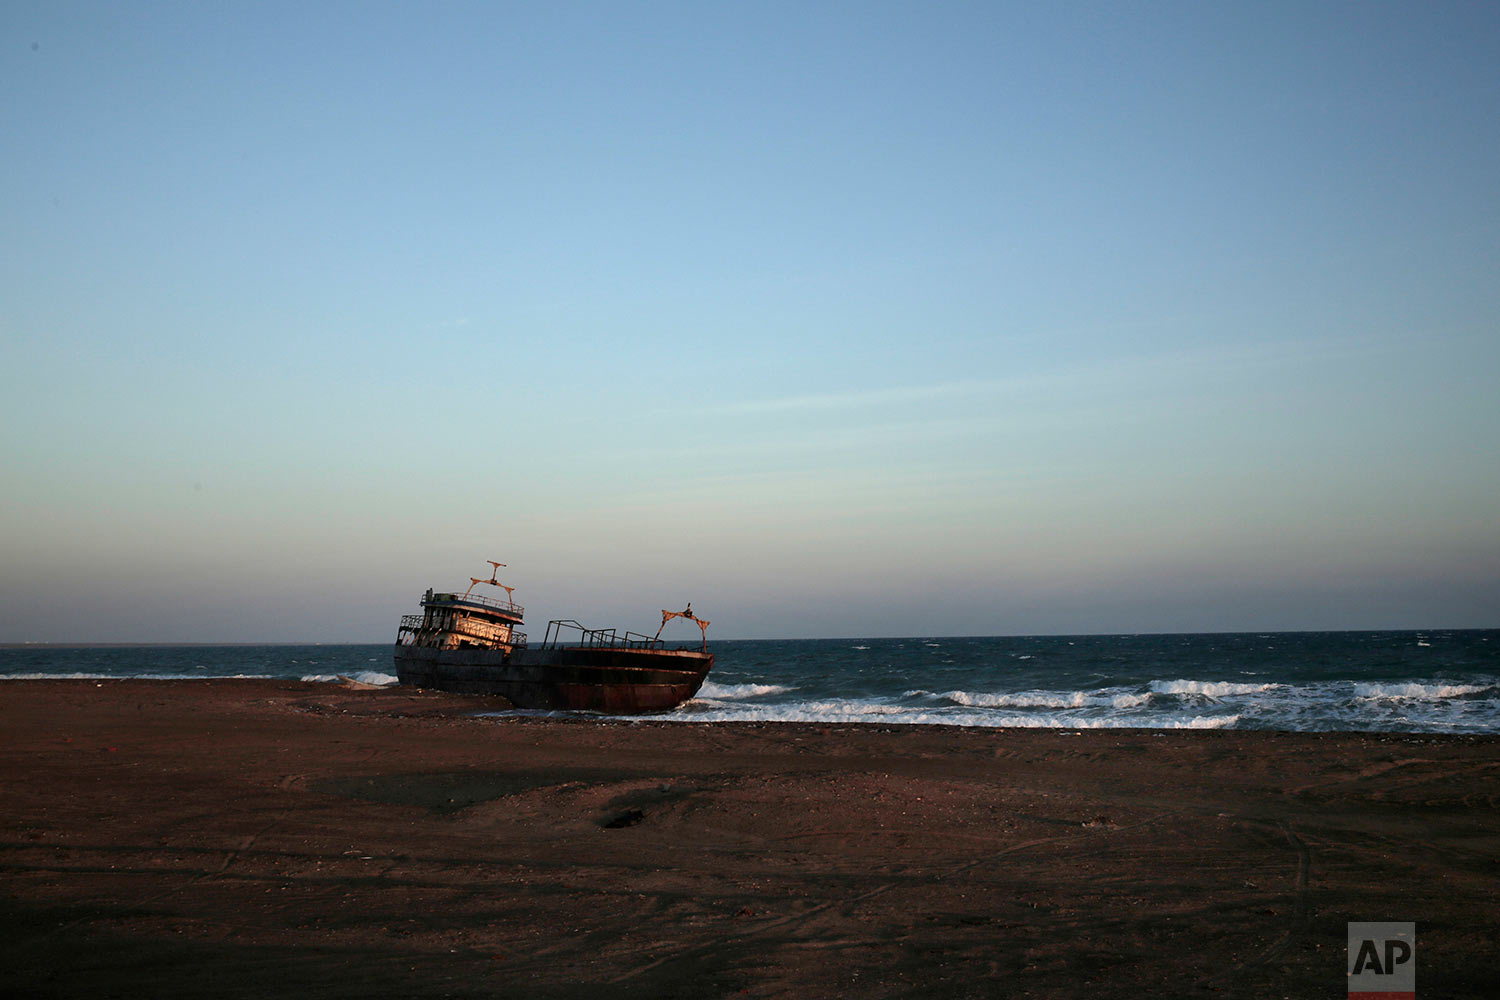 A ship wreck abandoned on the shore from Mocha to Aden in Yemen. On the beach, old pleasure venues also lie empty, broken and deserted due to the civil war here. (AP Photo/Nariman El-Mofty)